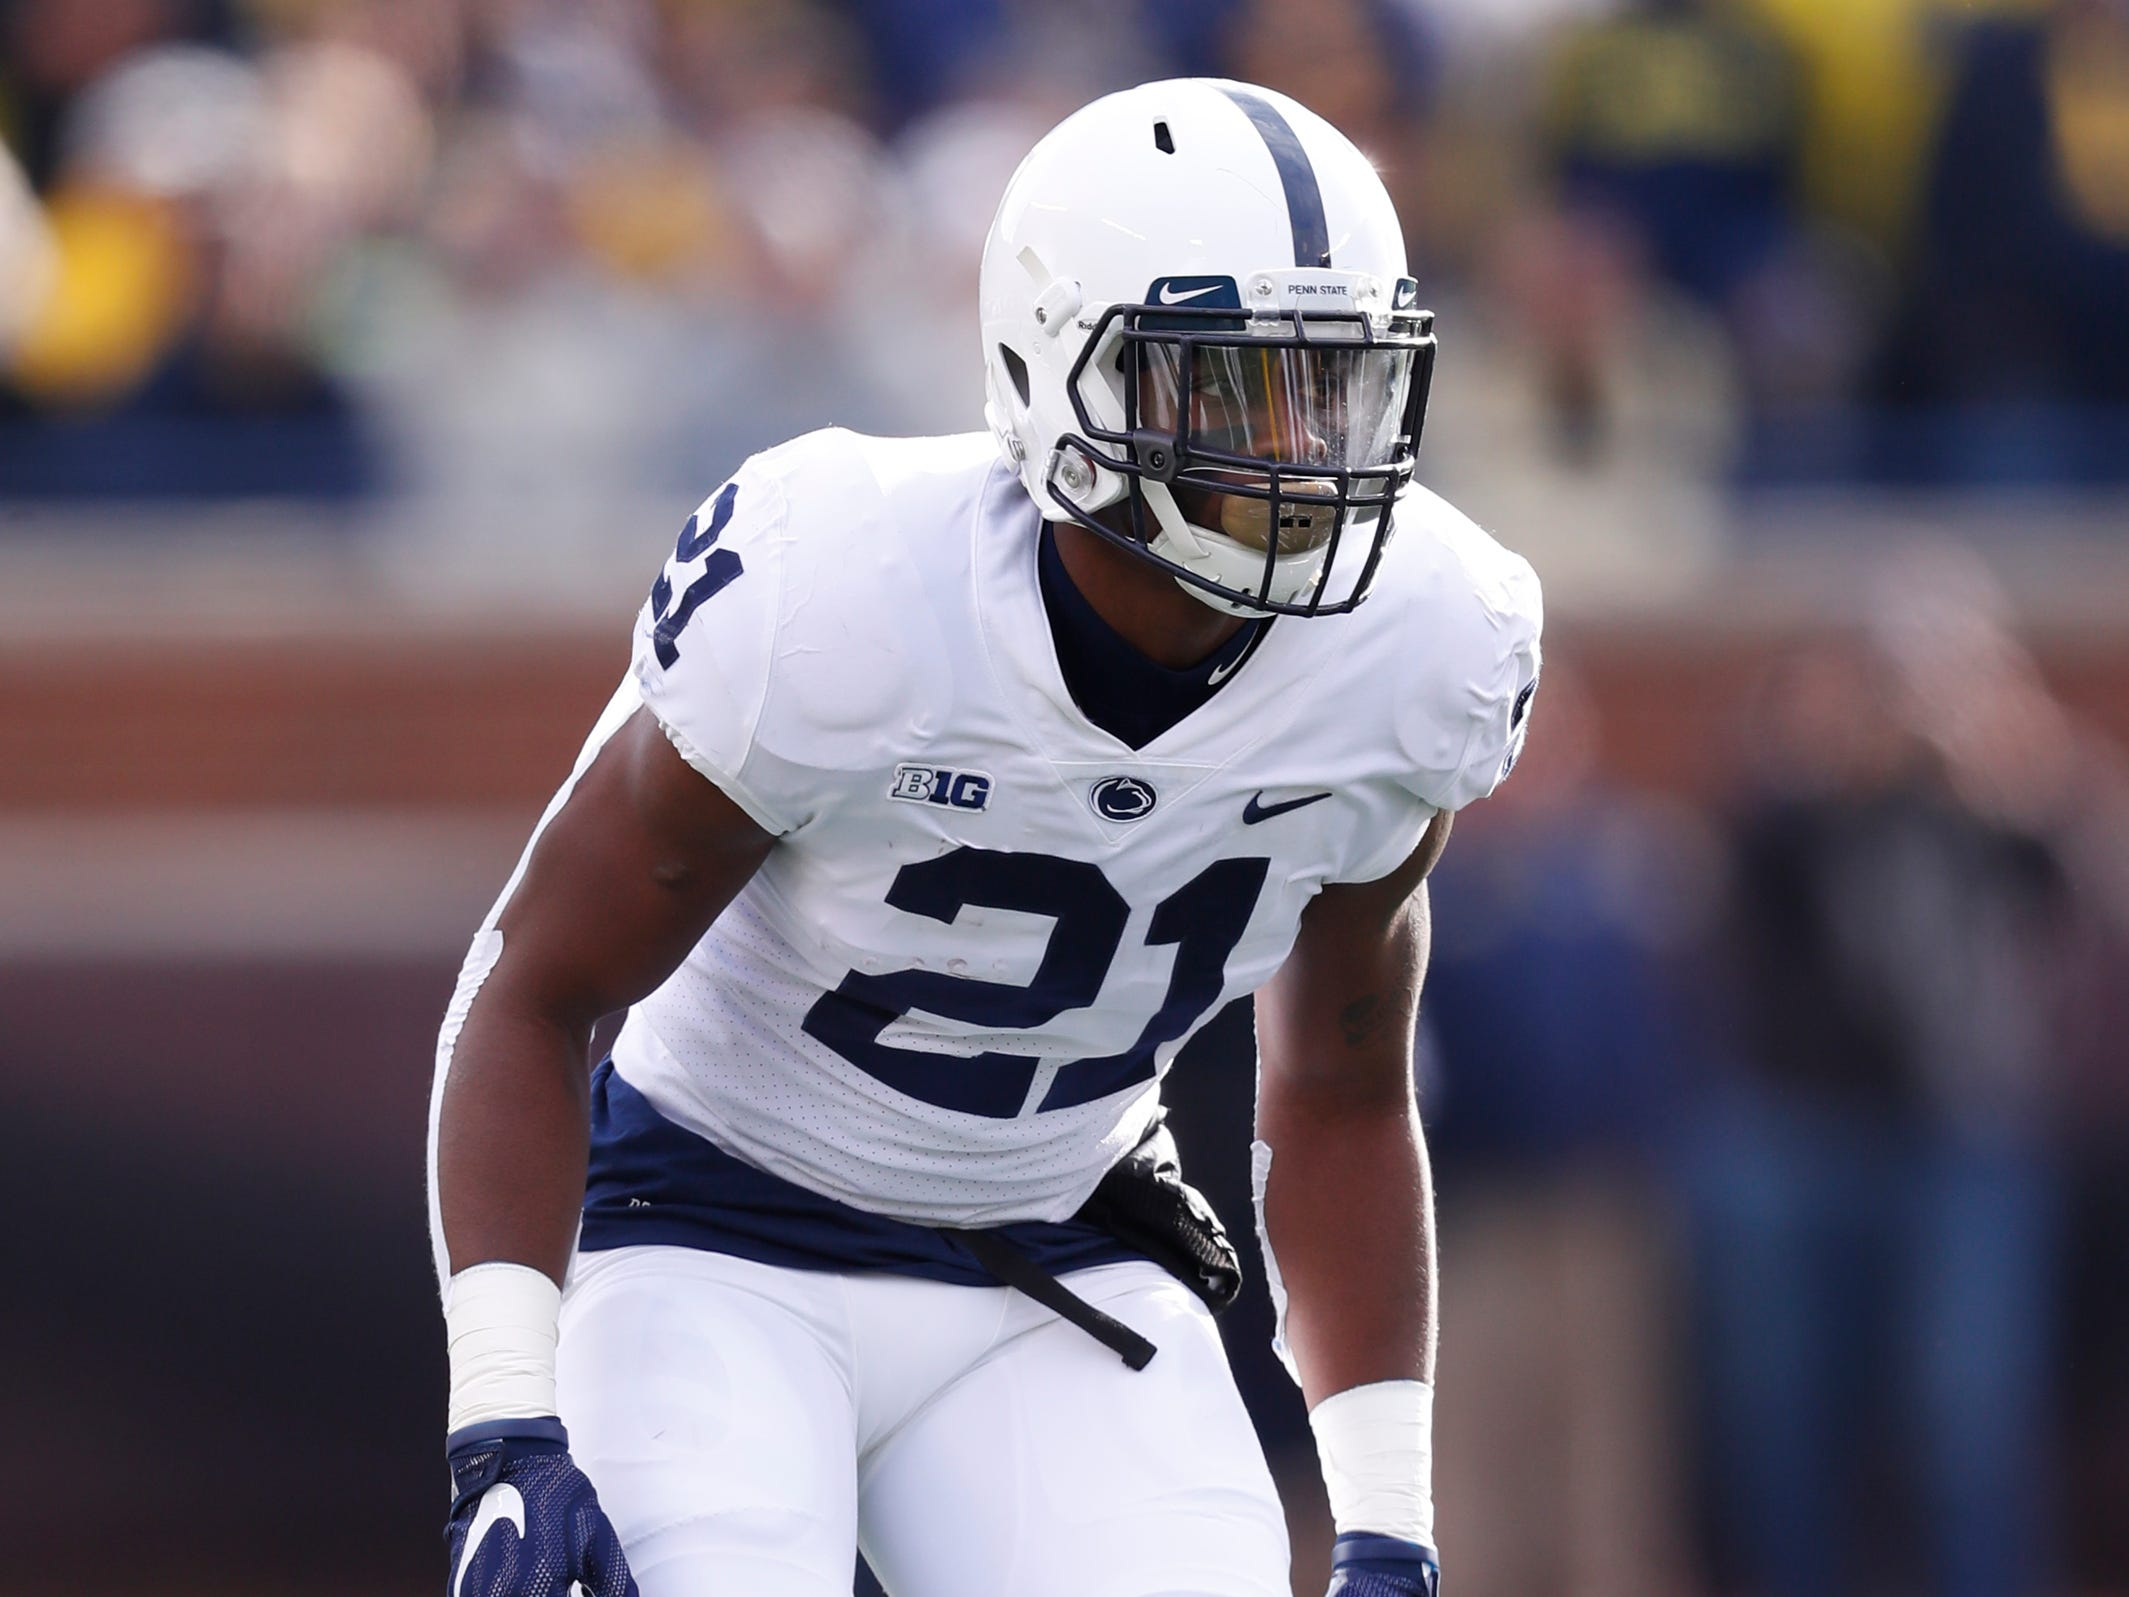 25. Amani Oruwariye, CB, Penn State: As a Day 2 option, Oruwariye might be an ideal fit for the Lions. He's big, physical, comfortable playing in zone and has shown good ball skills, intercepting seven passes over the past two years.